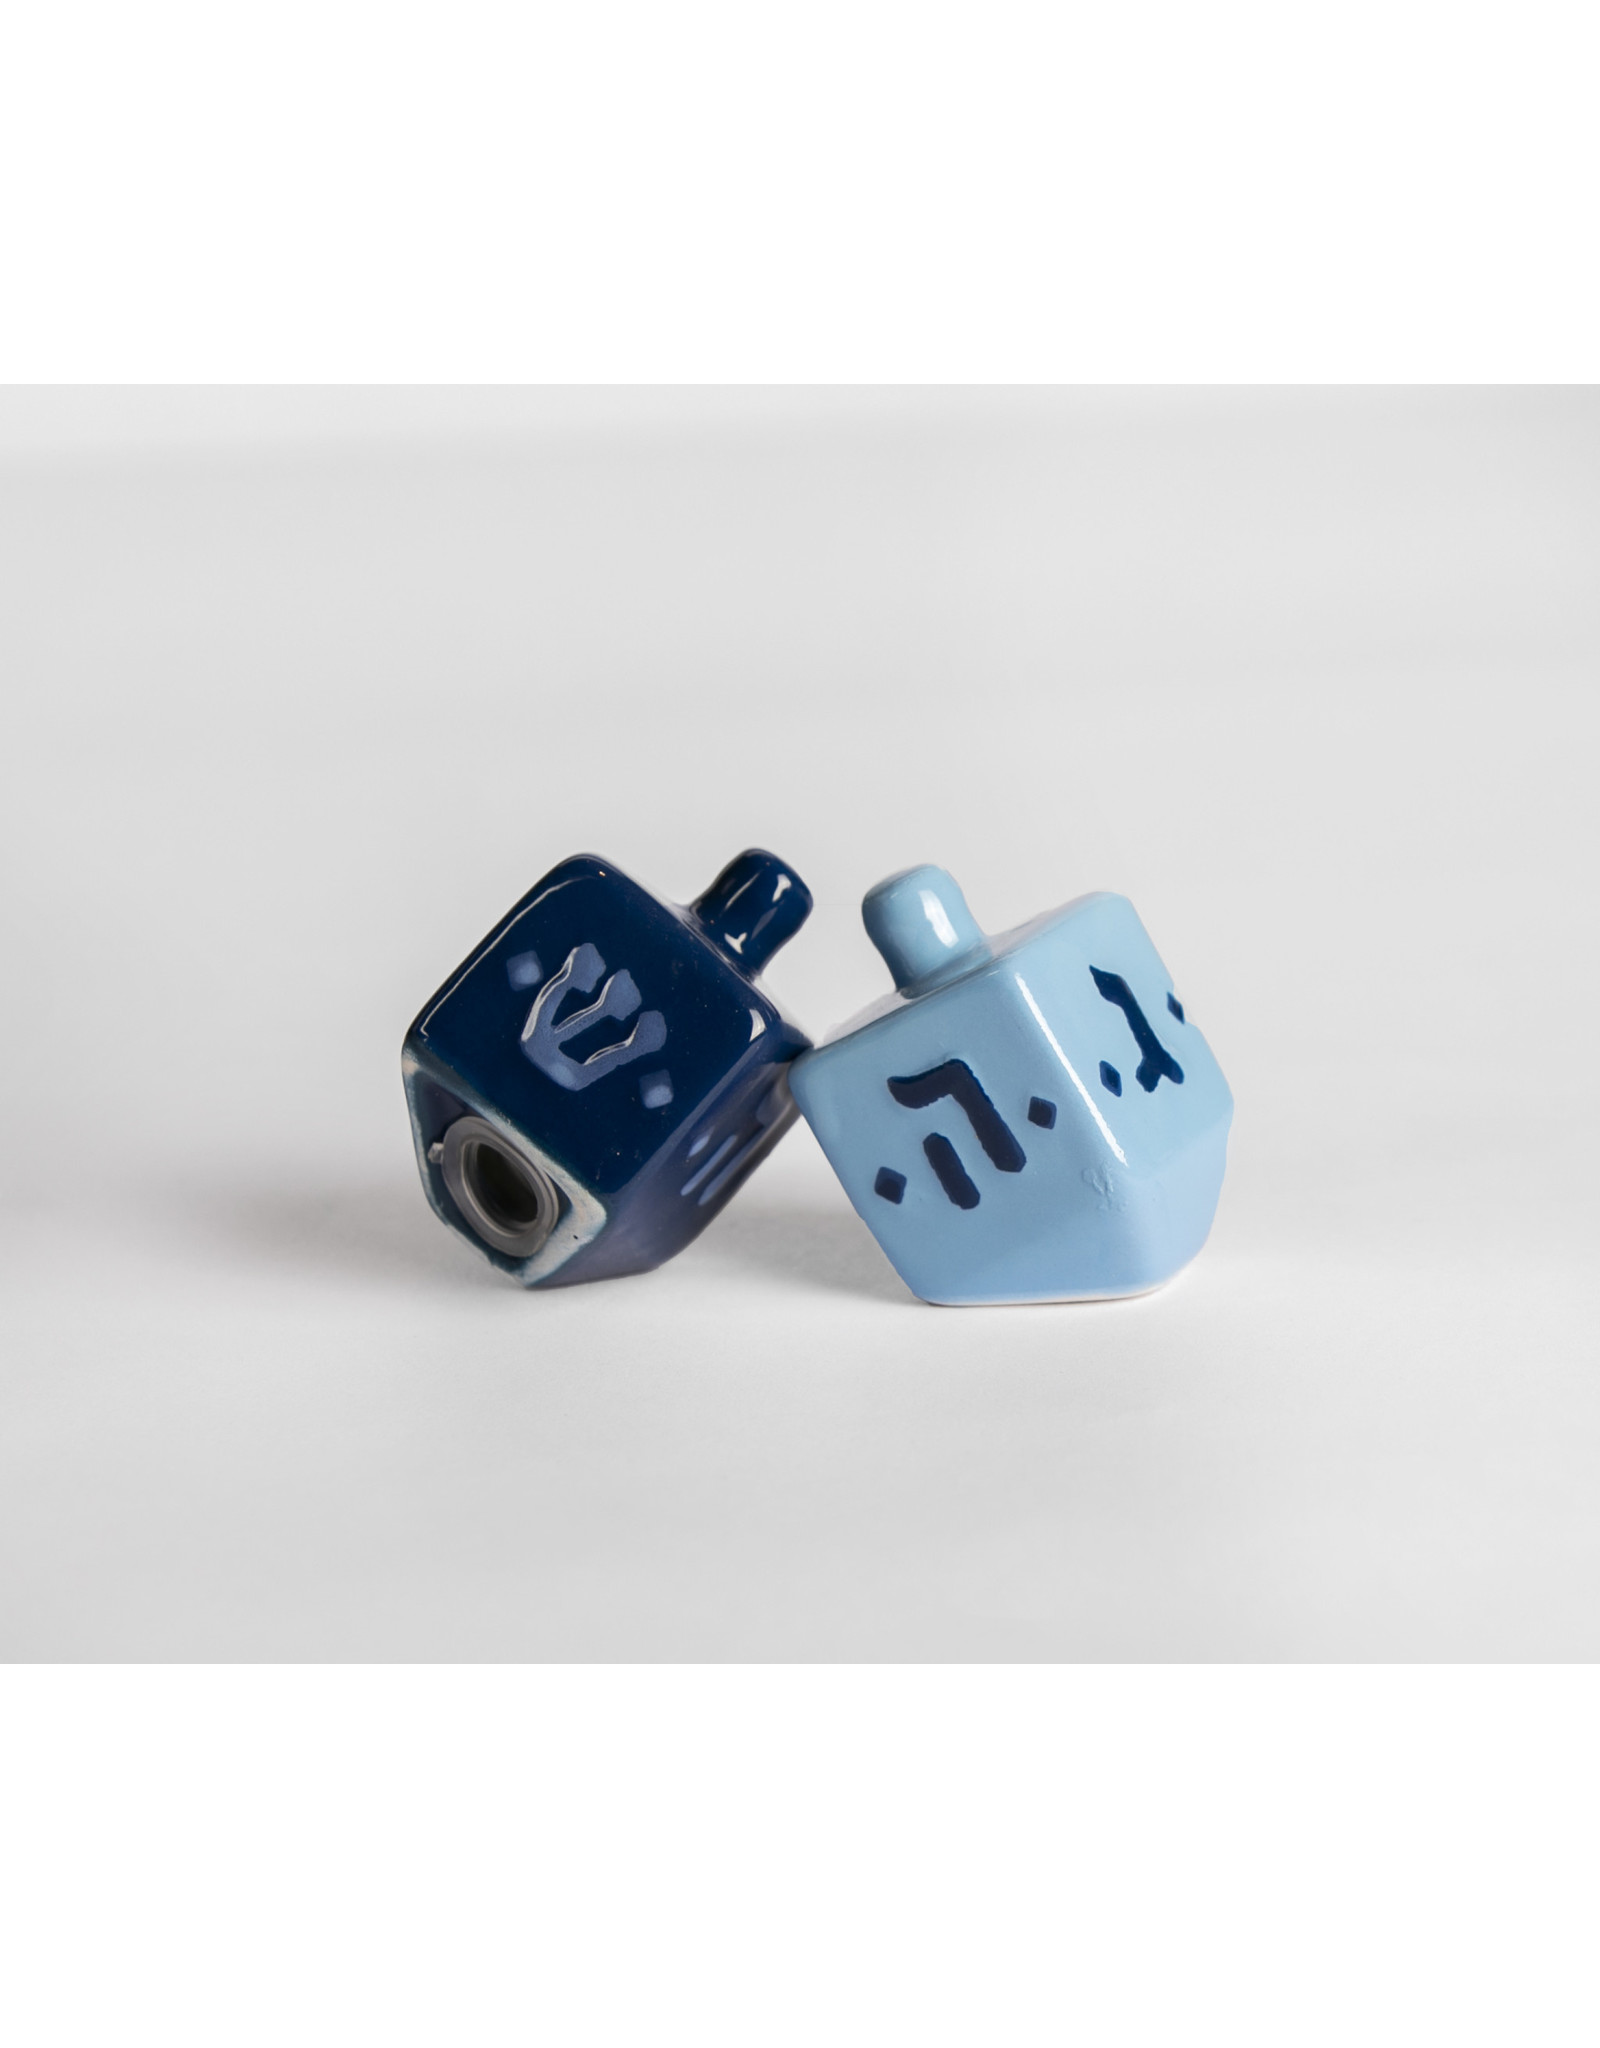 Hanukkah Dreidel Salt & Pepper Shakers